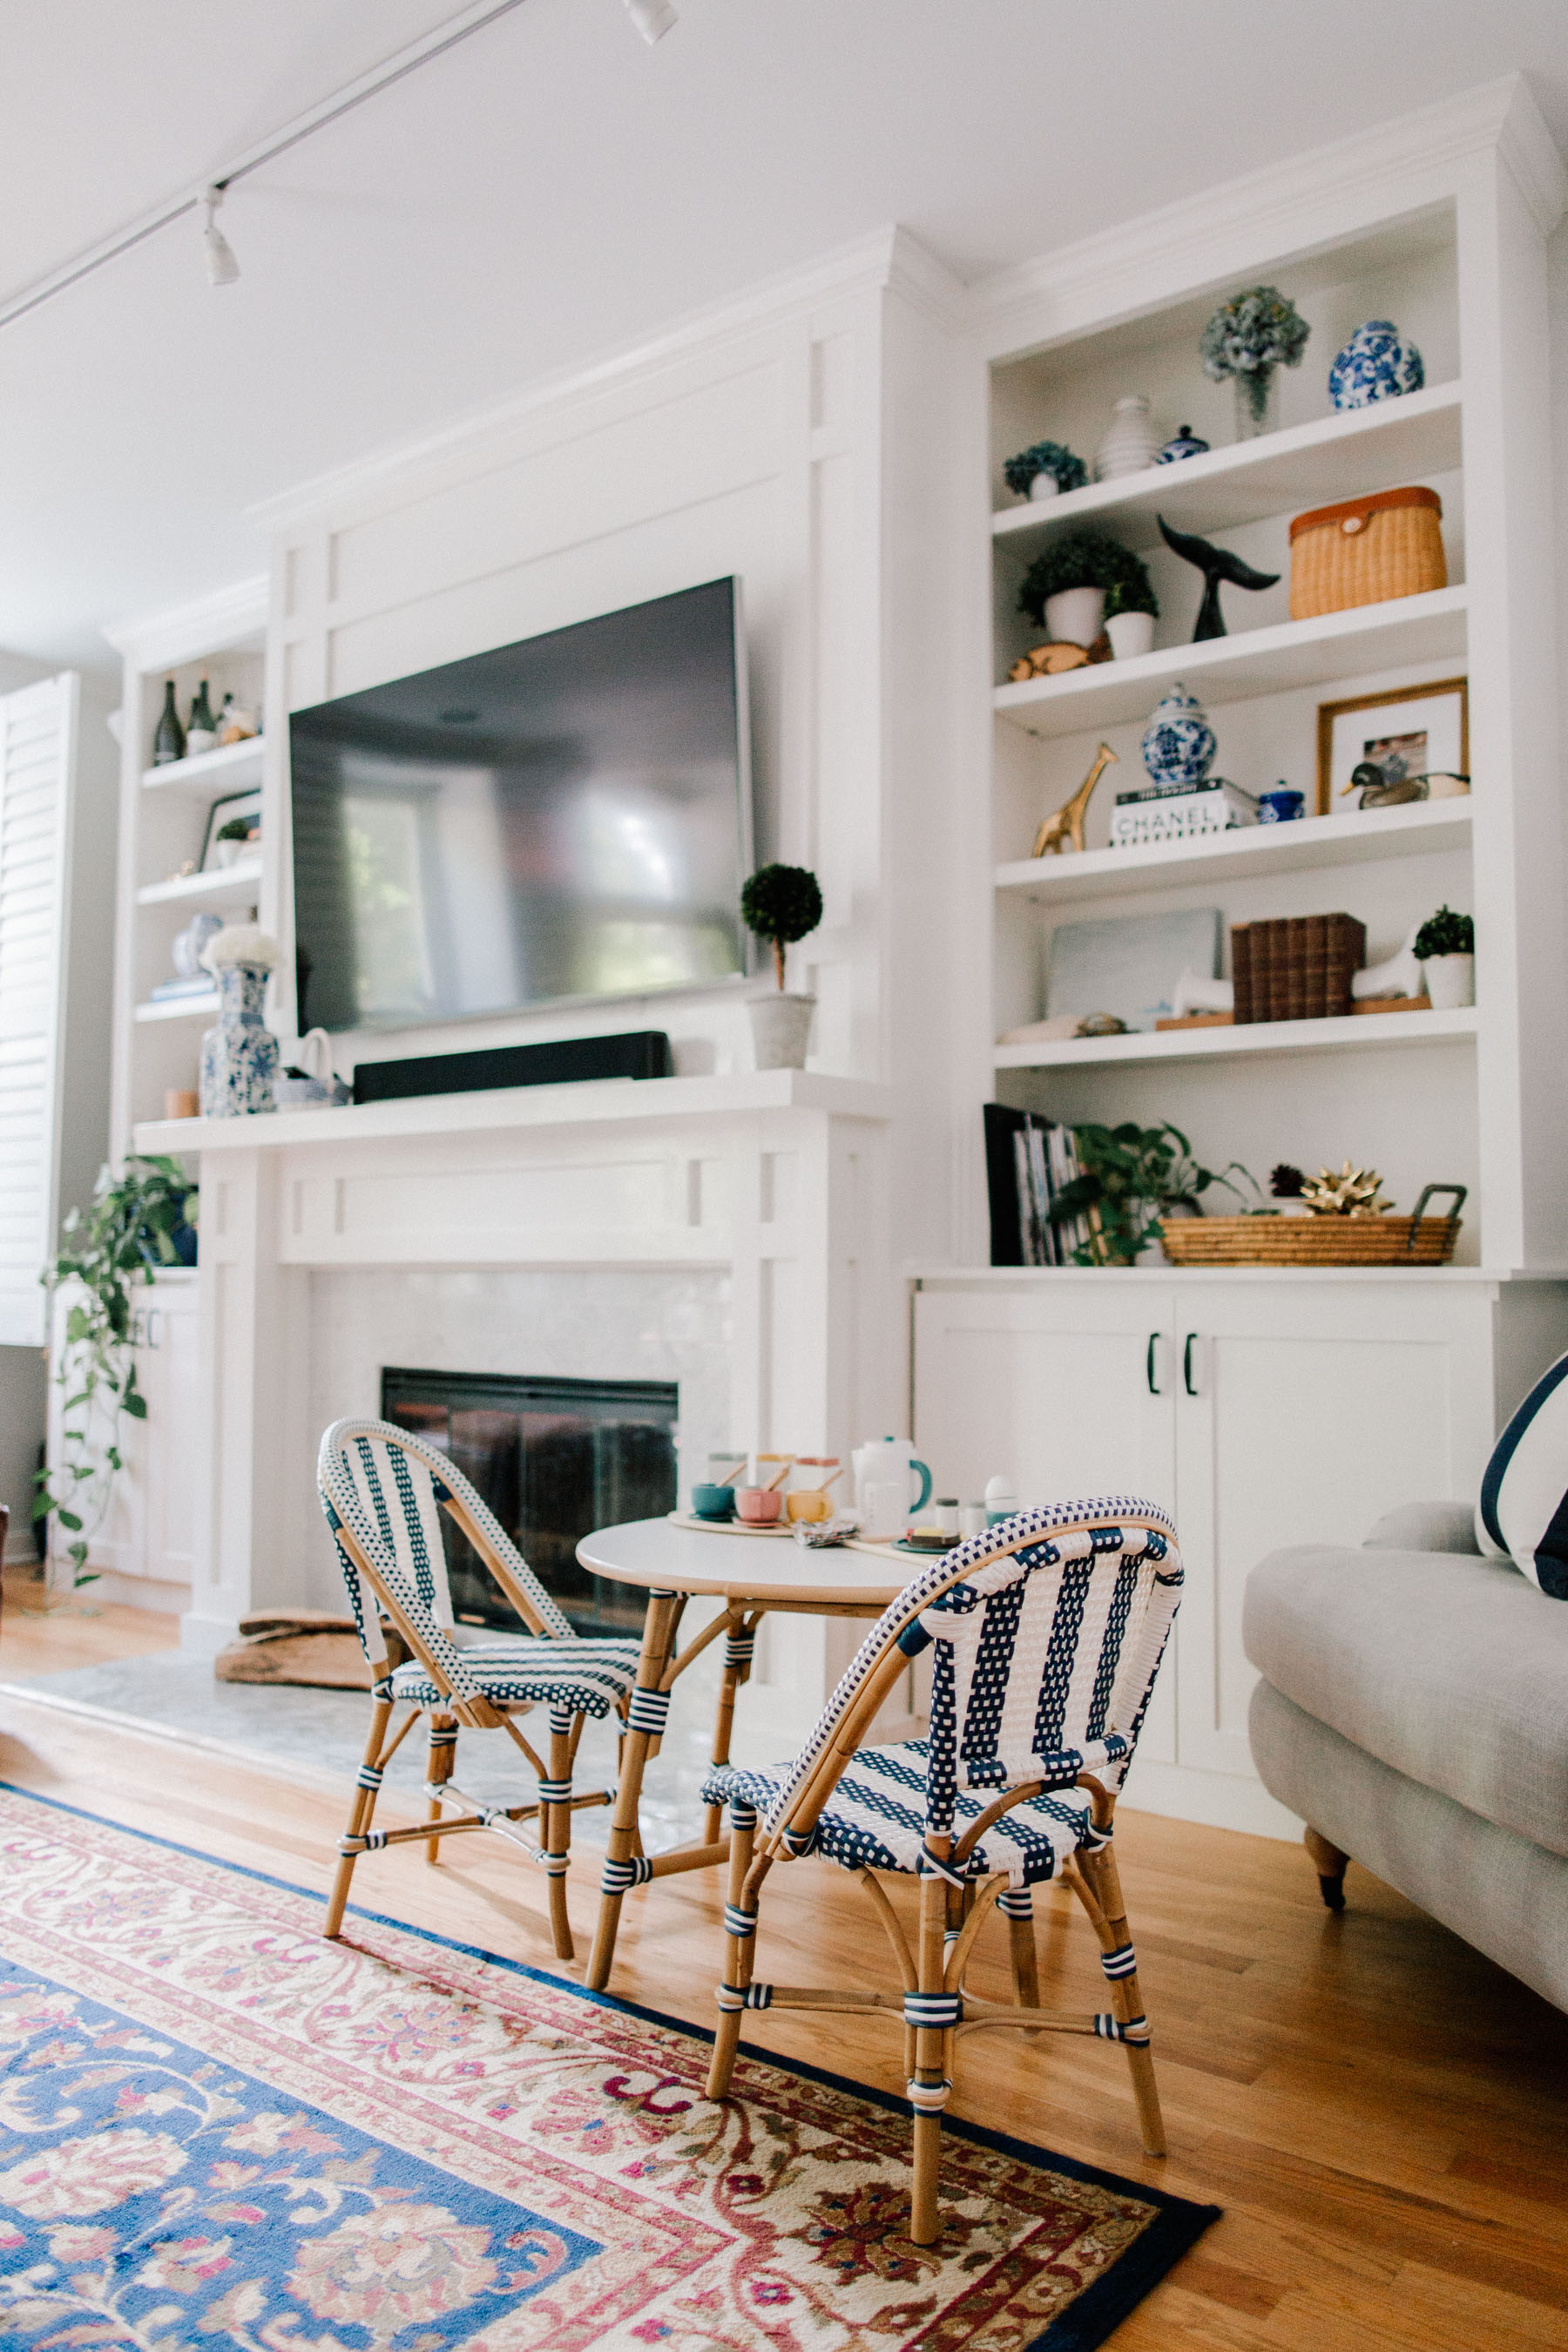 Living Room Renovation | Kelly in the City